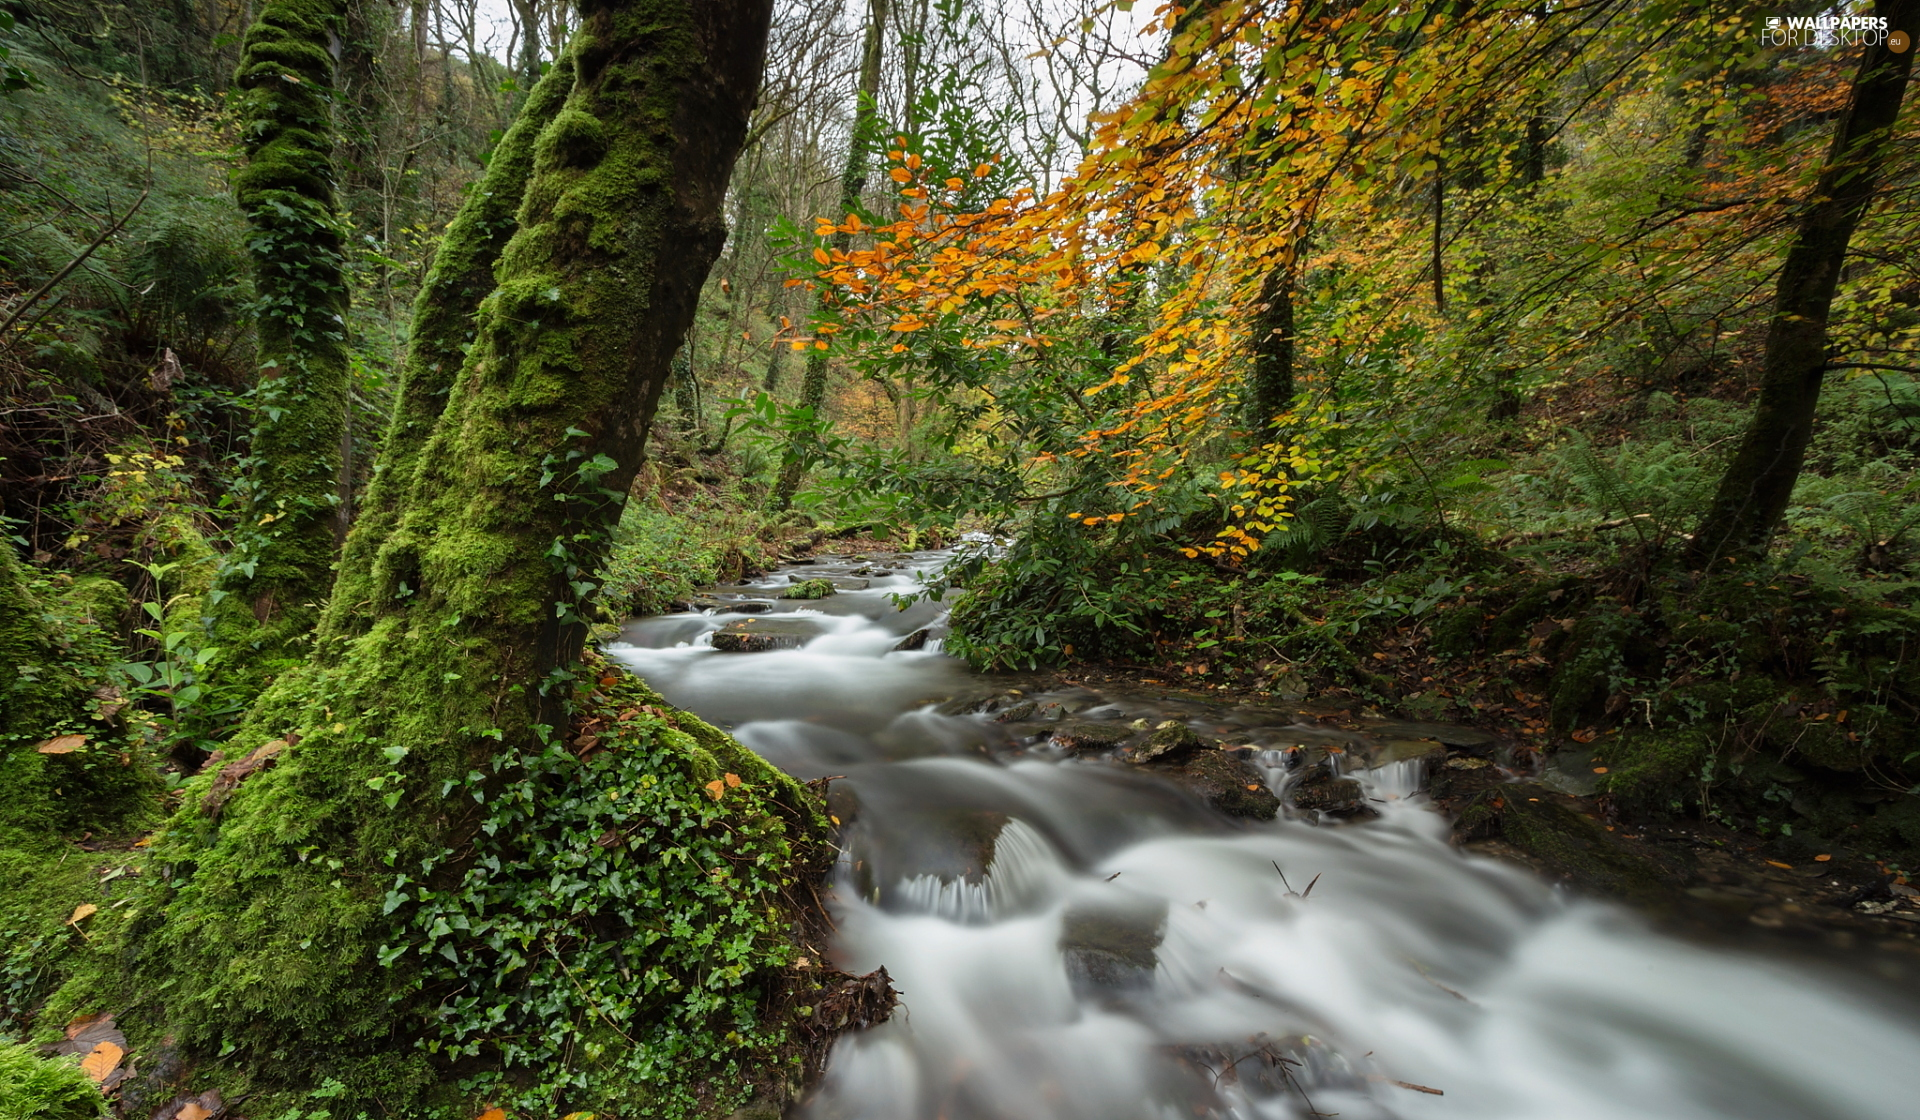 viewes, mossy, Stones, Stems, Plants, trees, forest, River